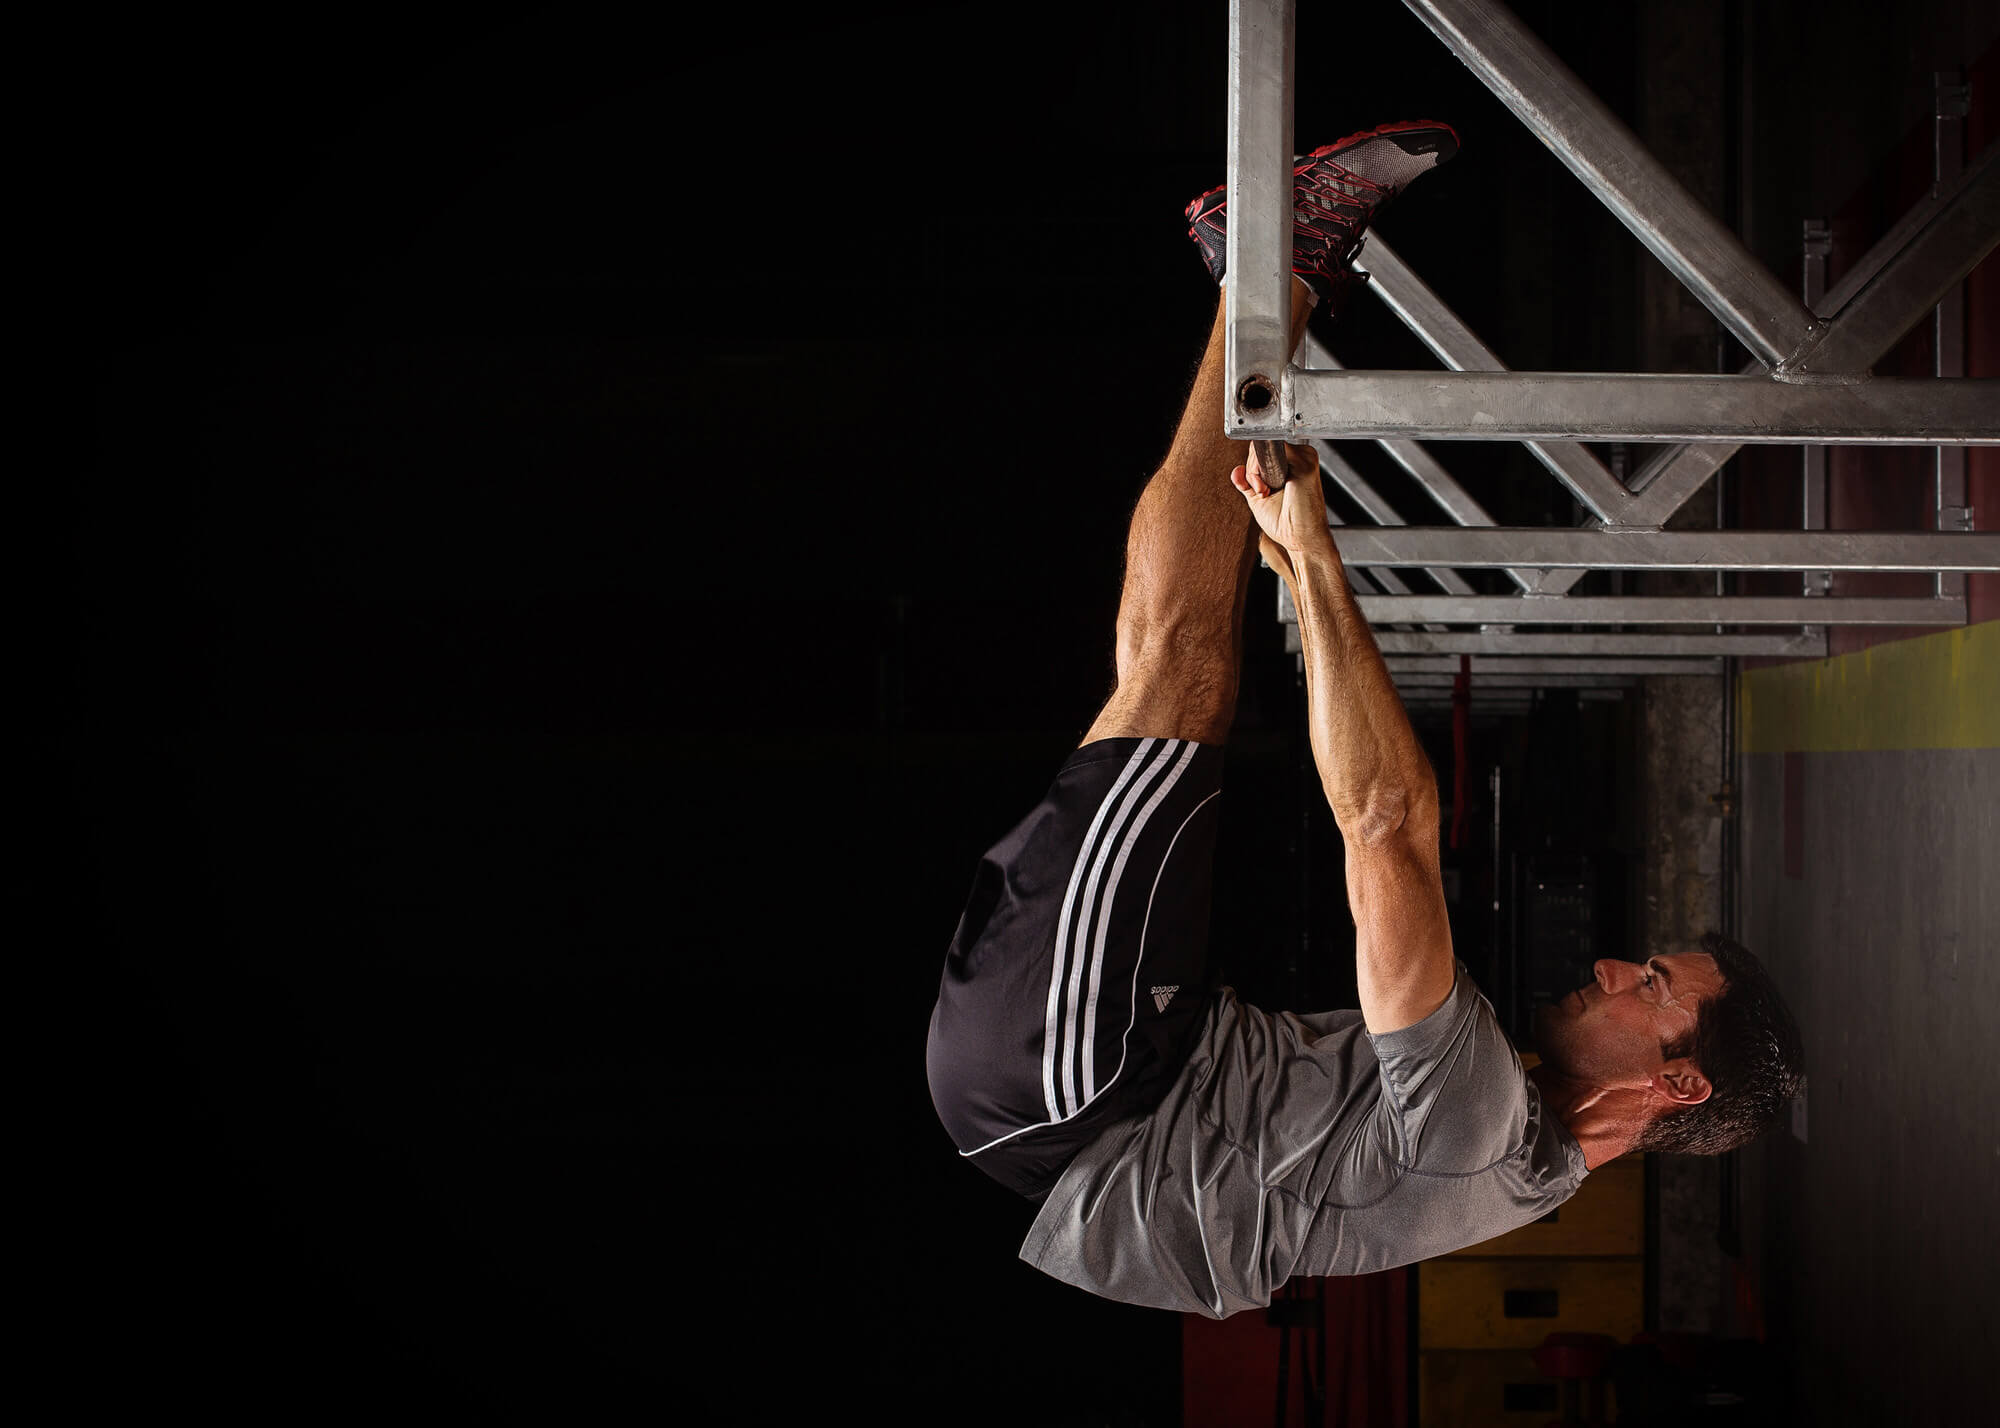 Athlete hanging from workout bar